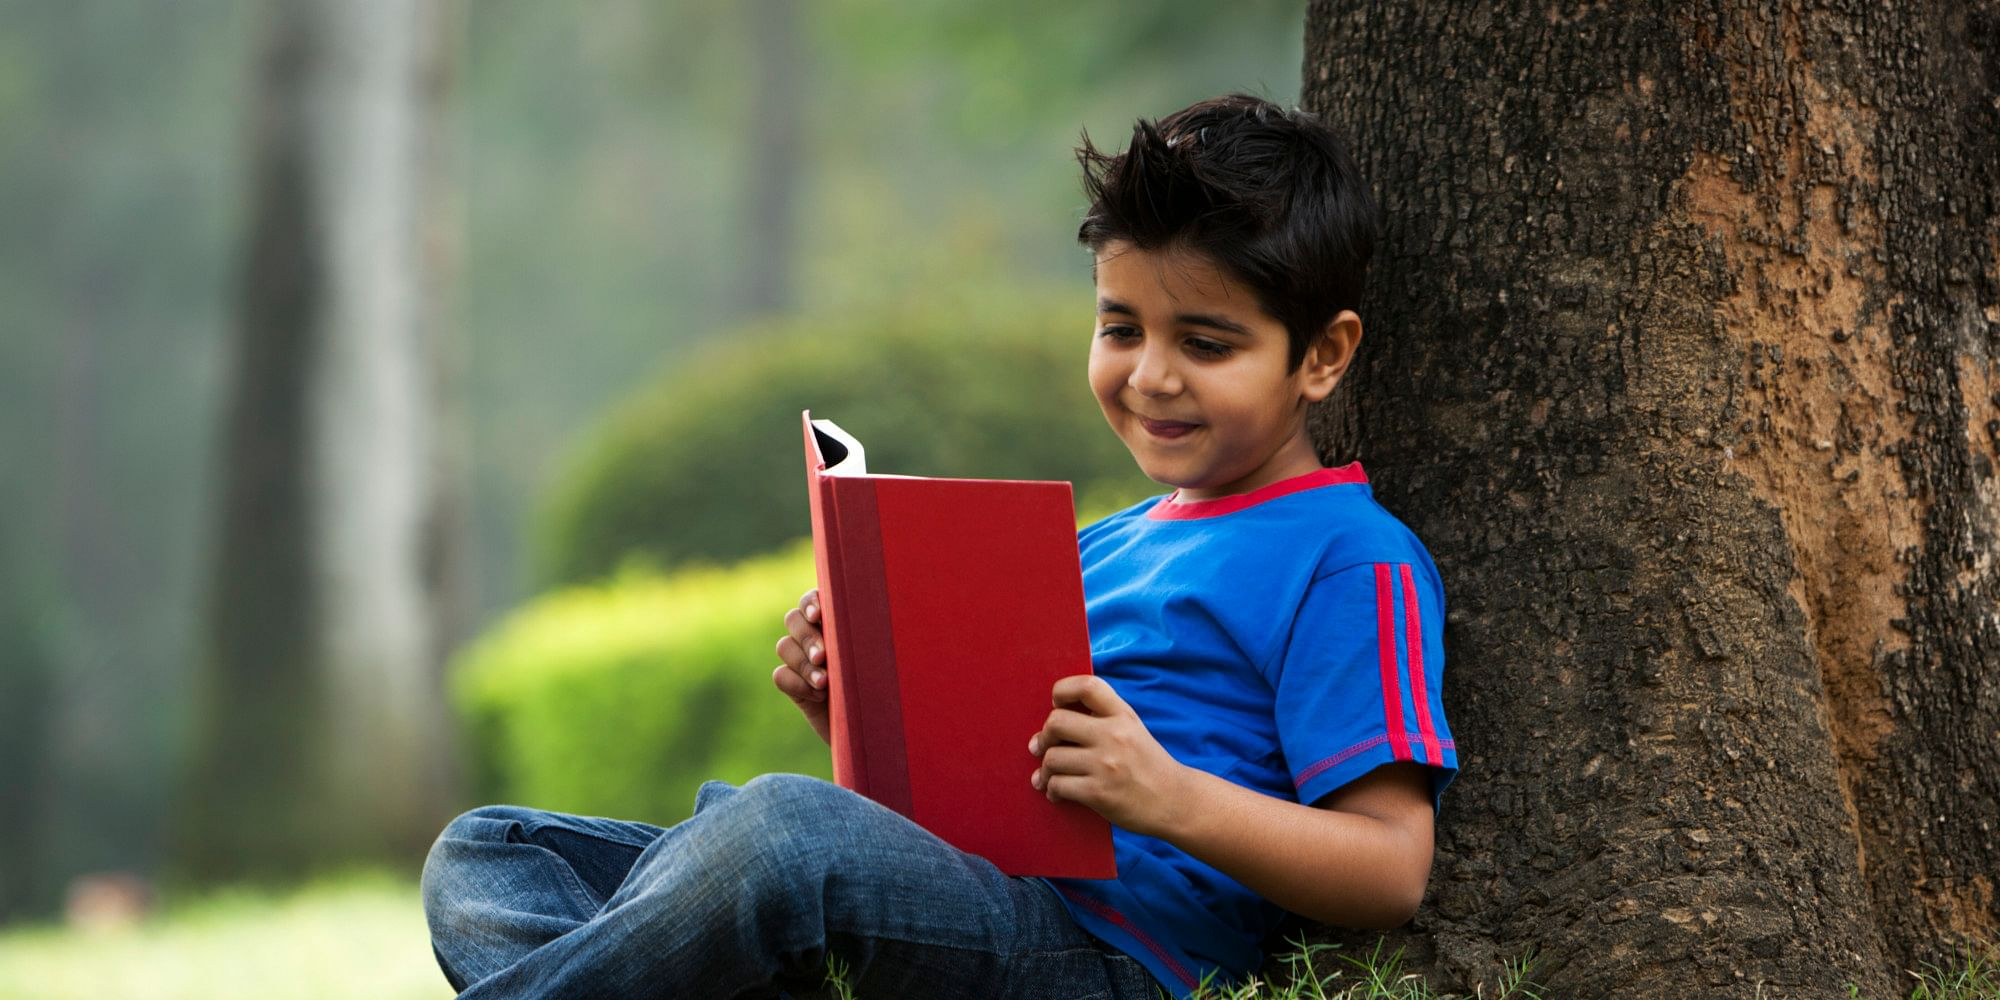 8 children u0026 39 s authors who will make your kids fall in love with books